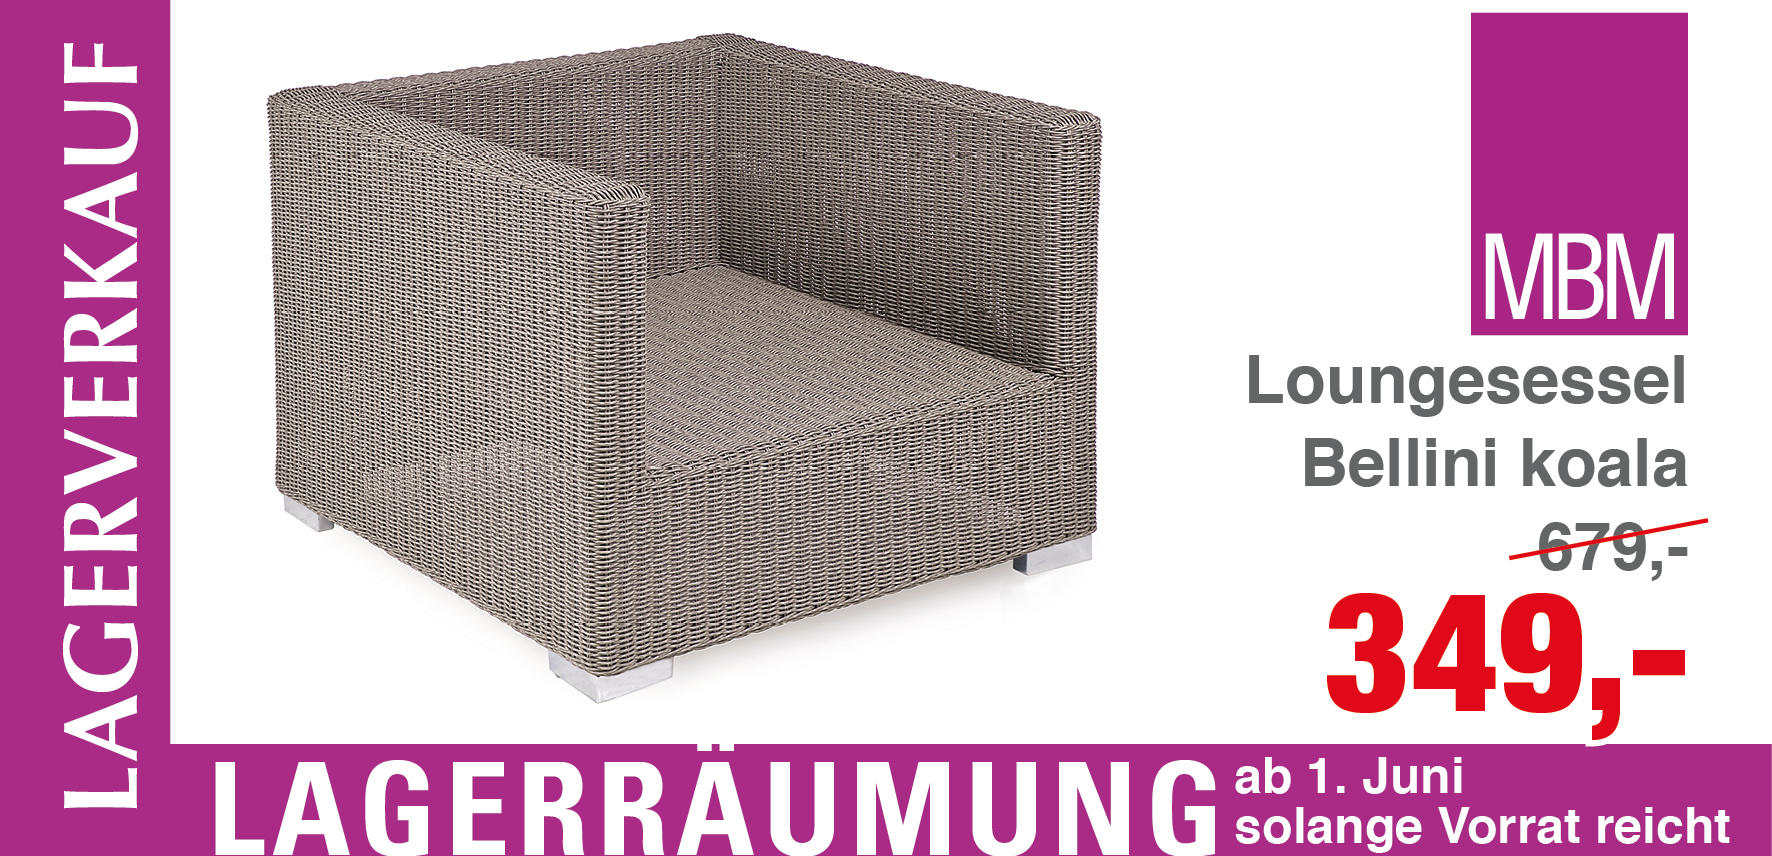 loungesessel bellini koala mbm gartenm bel lagerverkauf. Black Bedroom Furniture Sets. Home Design Ideas